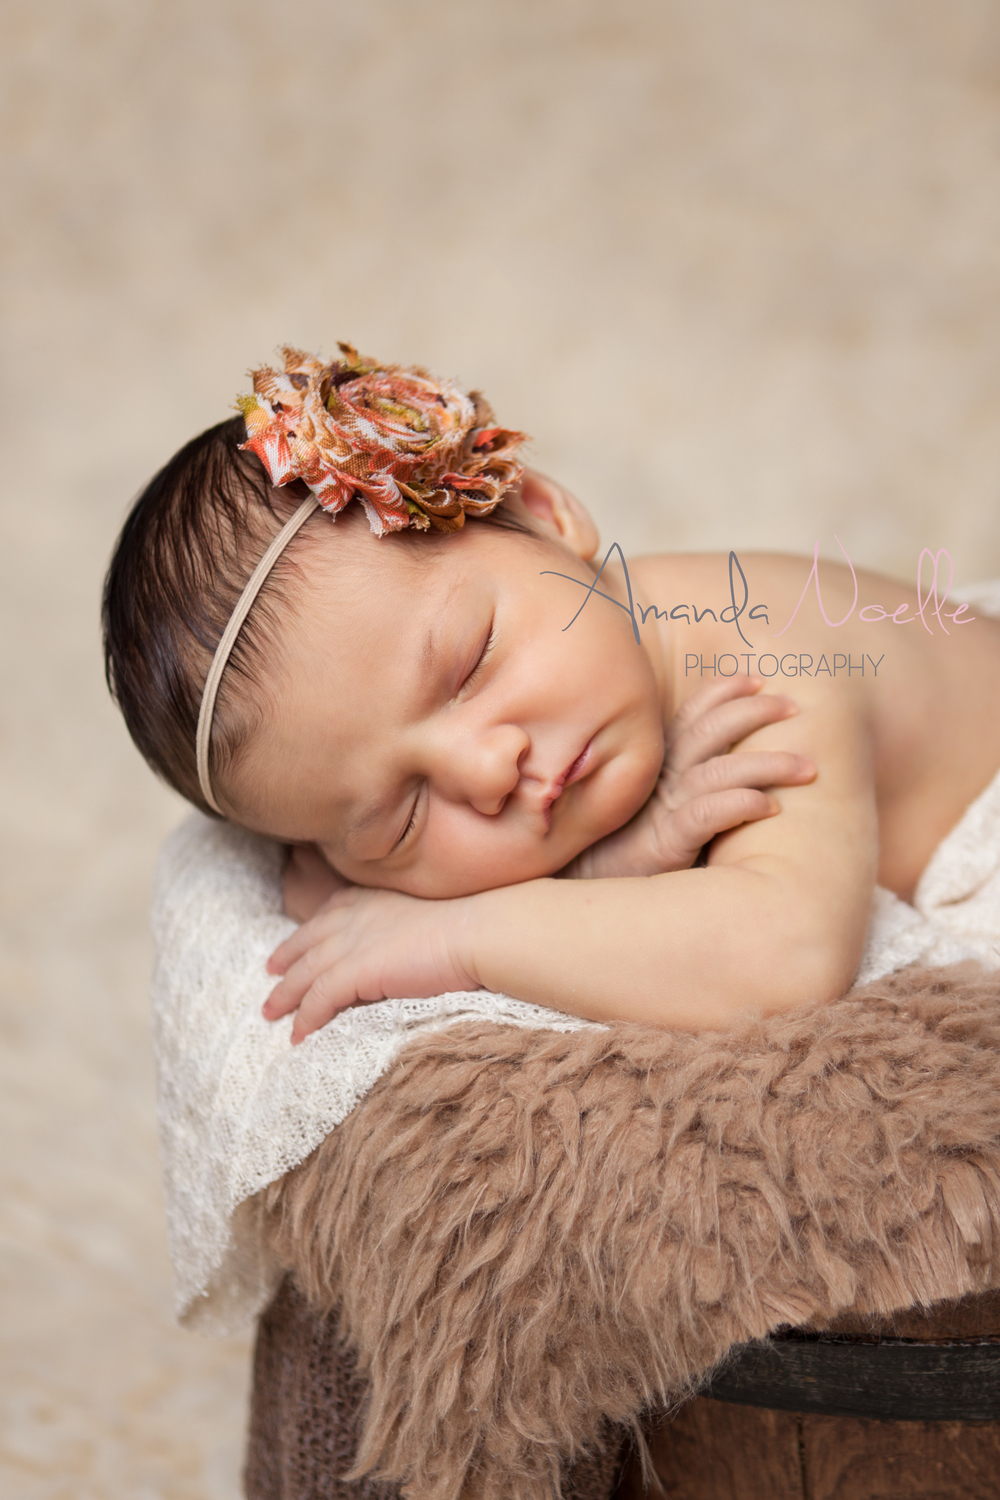 Newborn baby girl, in bucket, layering fabric and fur, headband shabby chic flower, brown creme orange, sleeping prop pose by Westchester County, New York, Newborn Photographer, Amanda Noelle Photography.